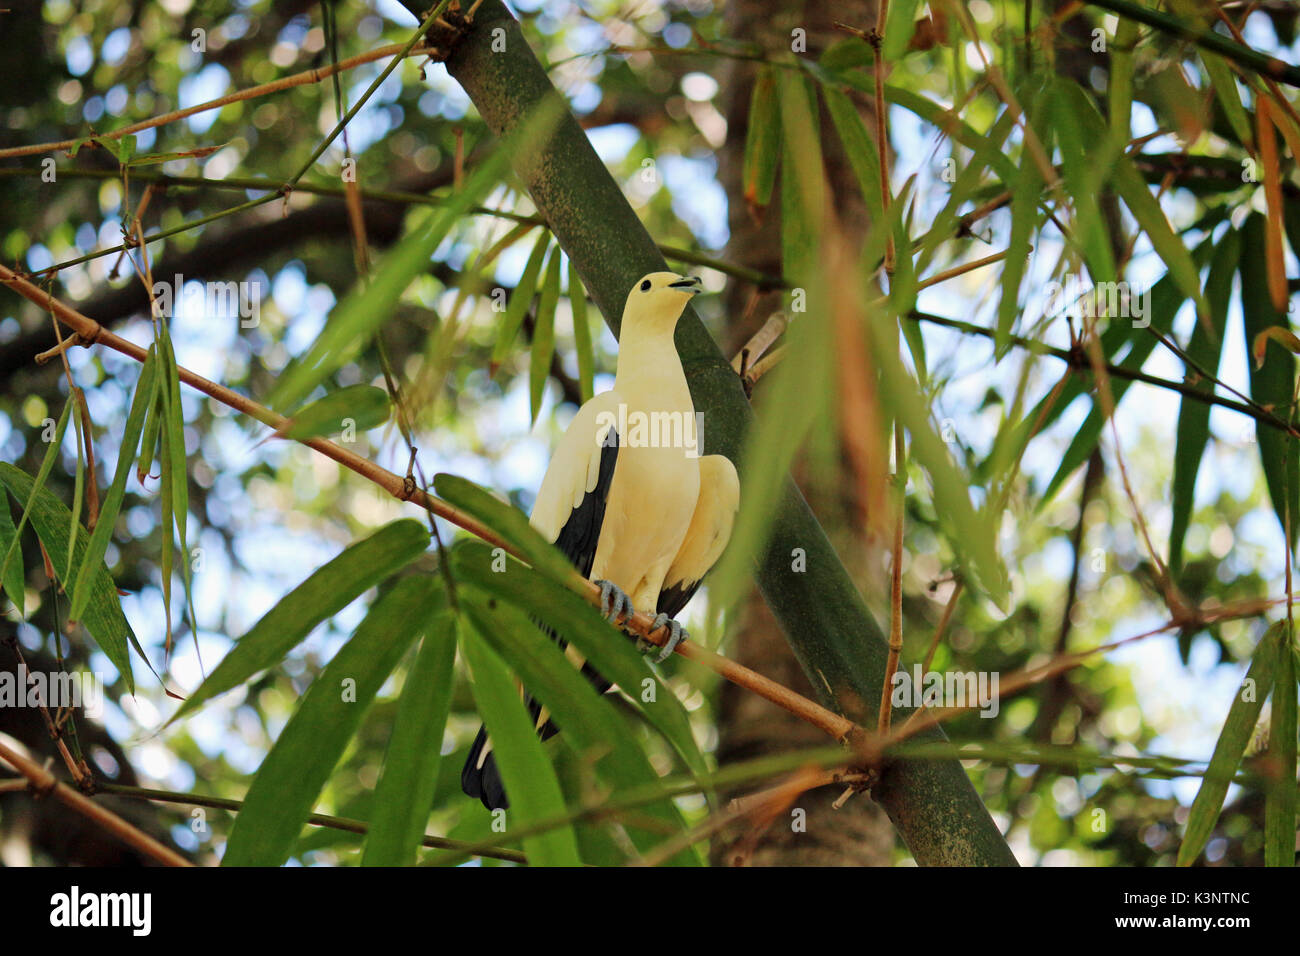 A Yellow Pied Pigeon in the Tree Tops on a Tree Branch, - Stock Image